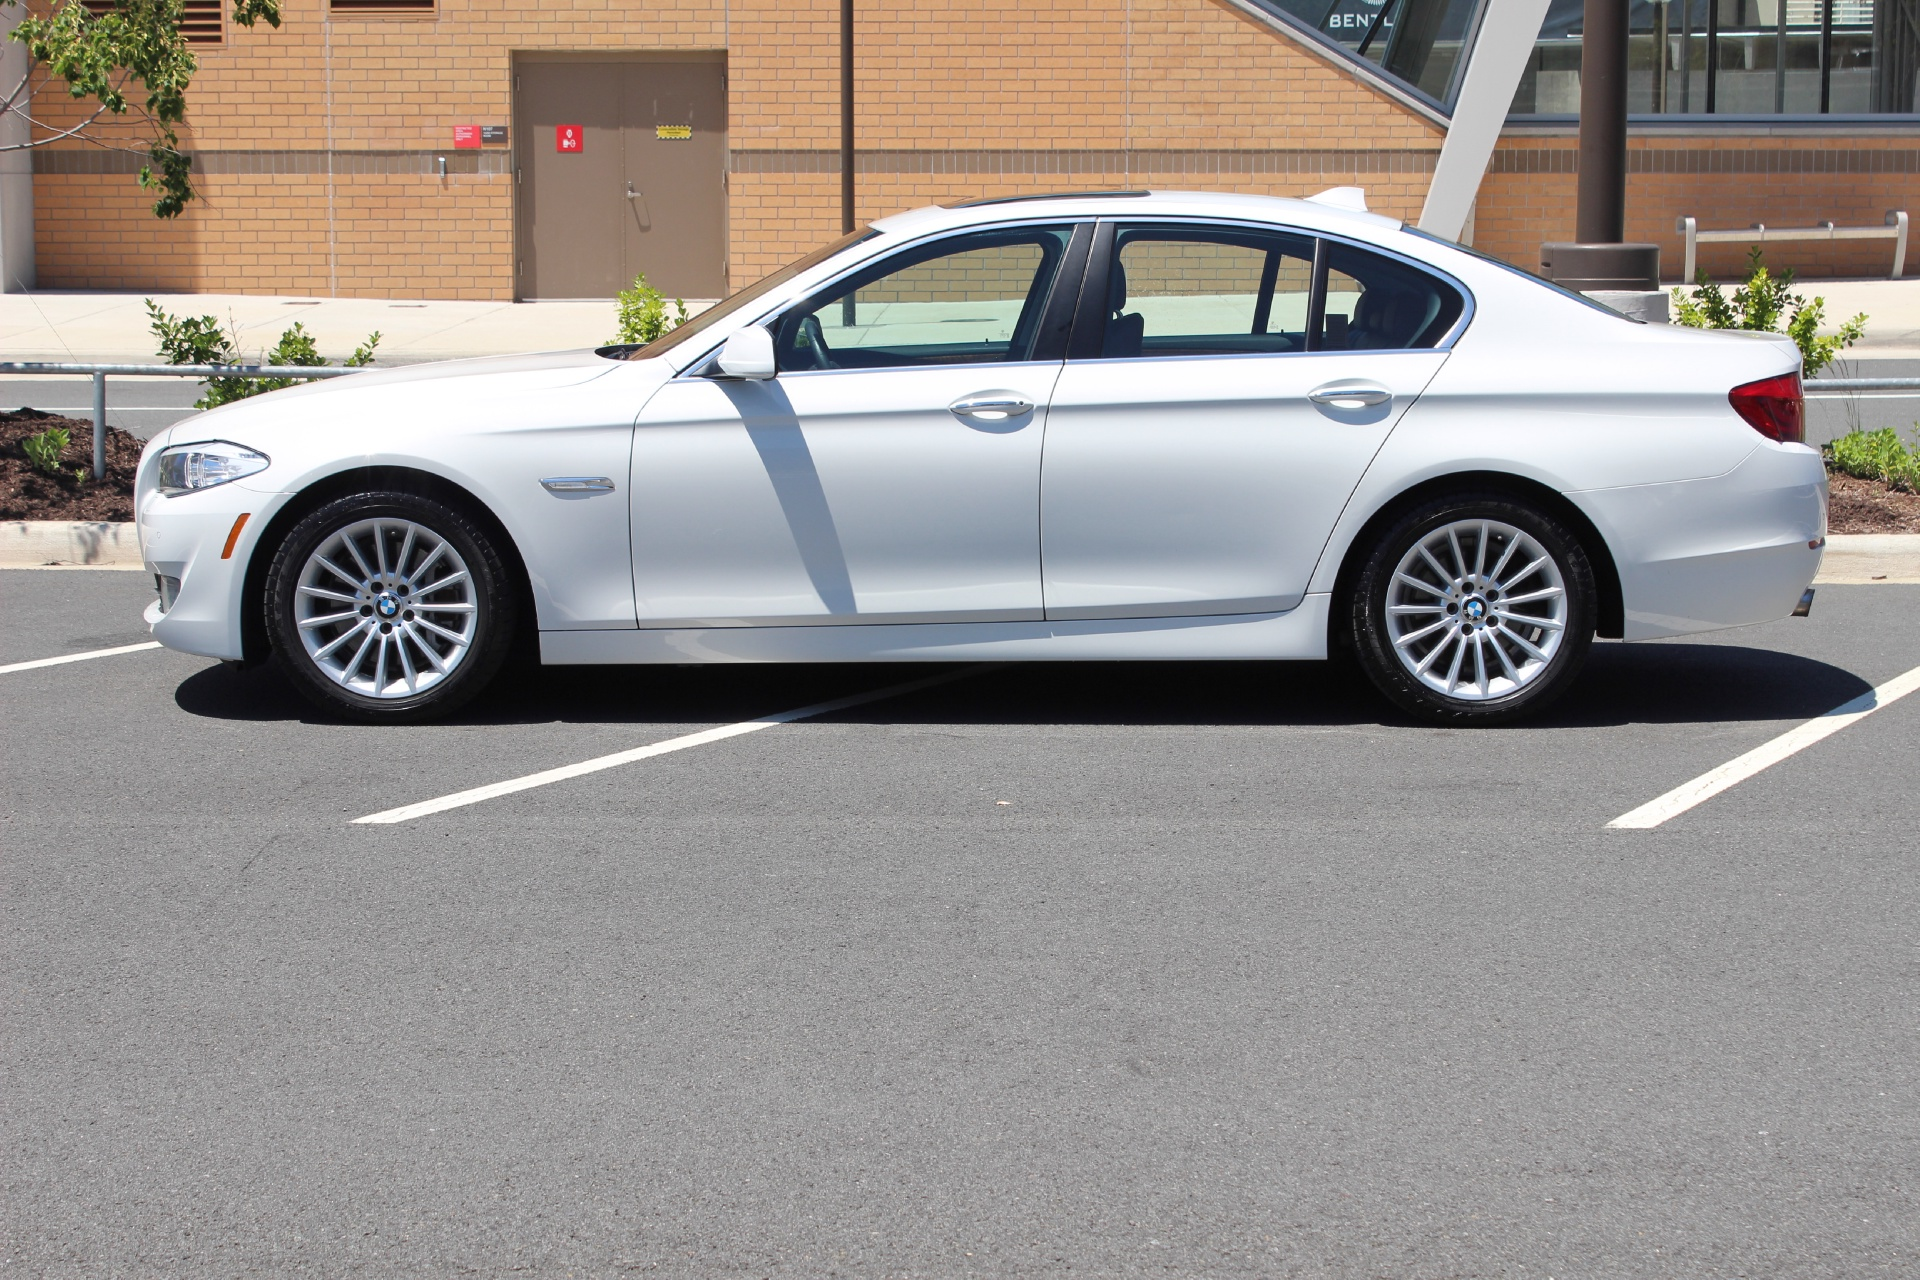 bmw for jacksonville used in of fl sale beautiful click here